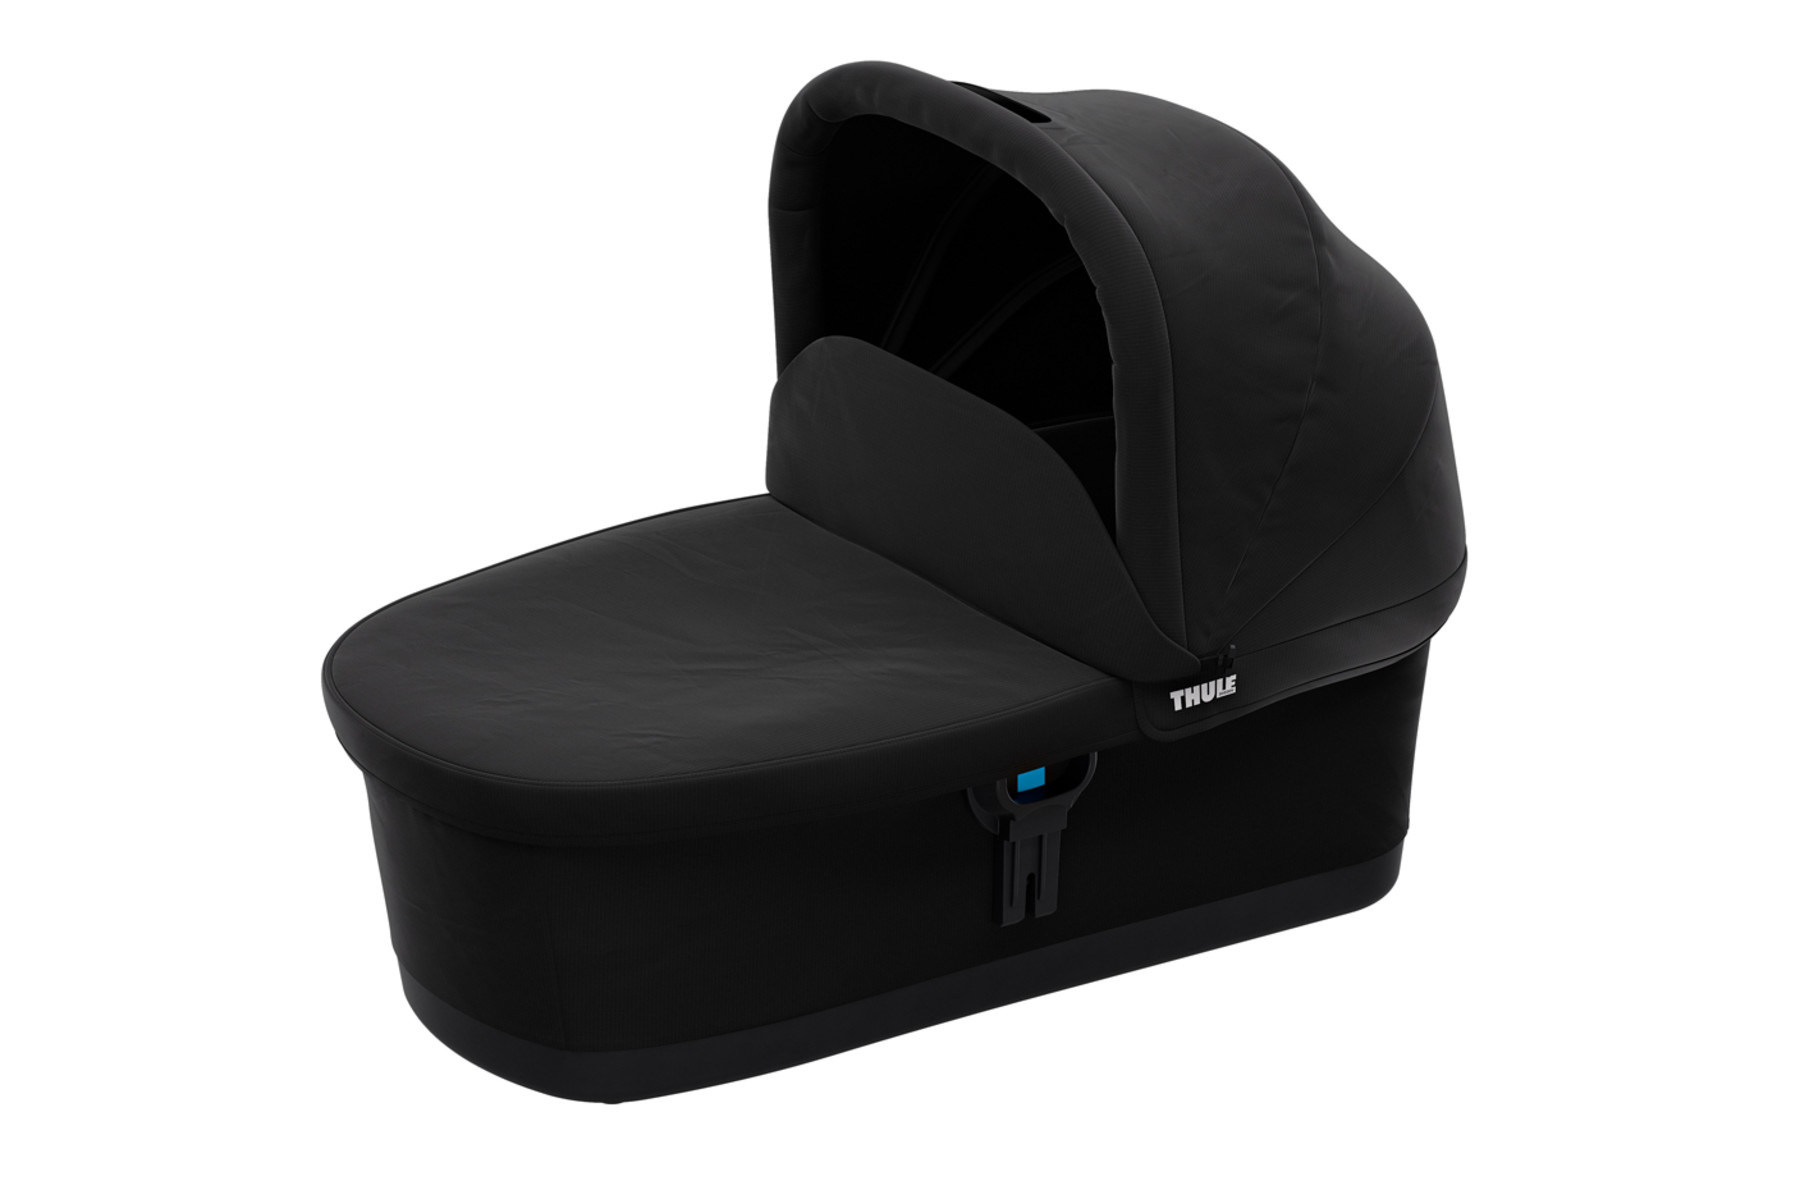 Thule Thule Urban Glide 2 Bassinet - black (preorder for January 2021)